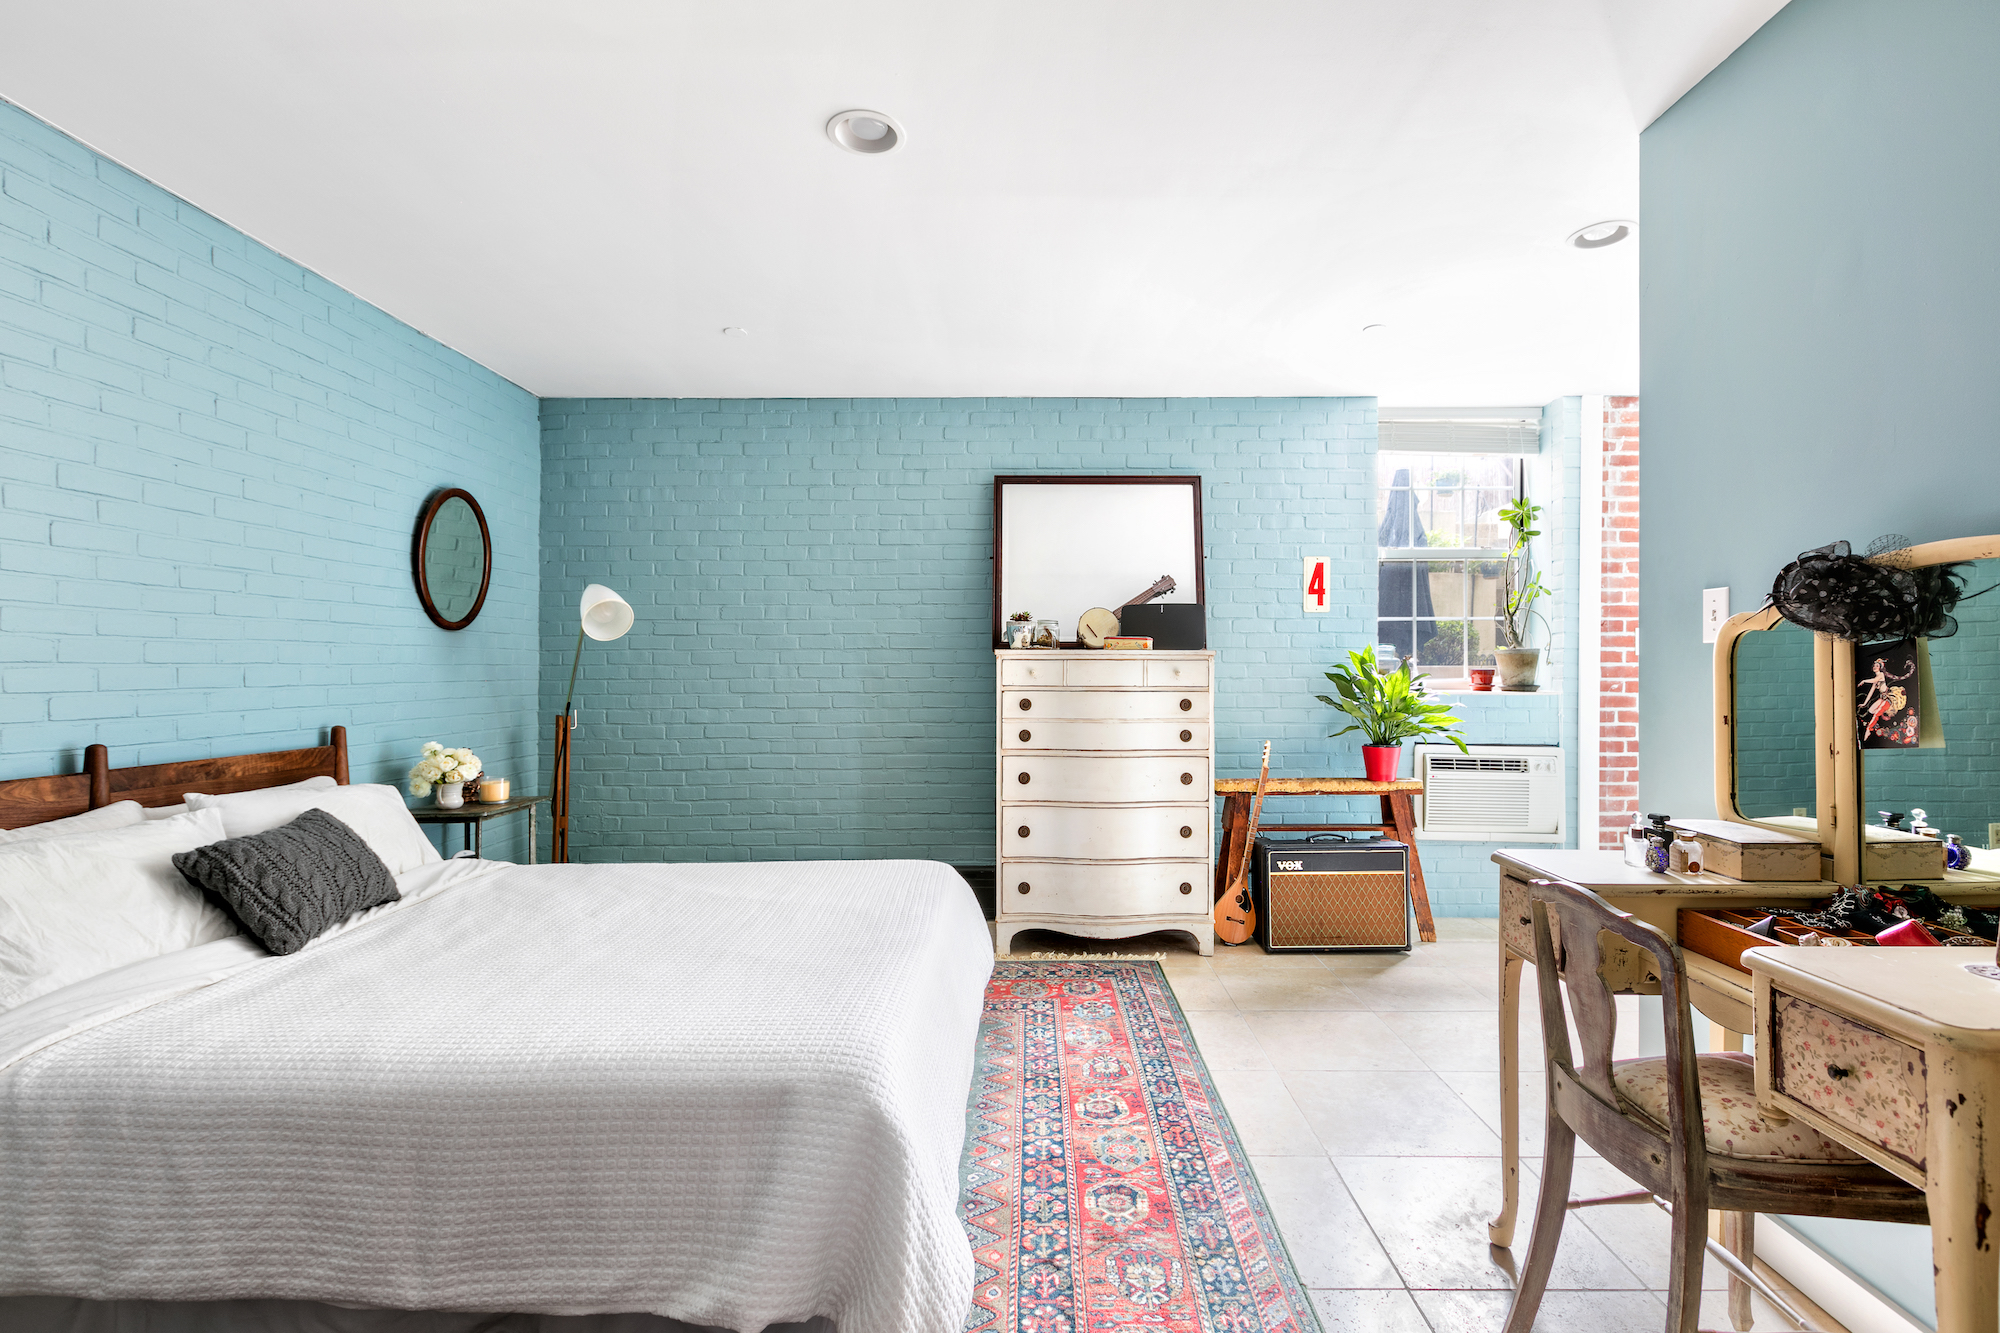 Backyard Paradise: Behind This $1.25M Greenpoint Duplex Is A Barefoot